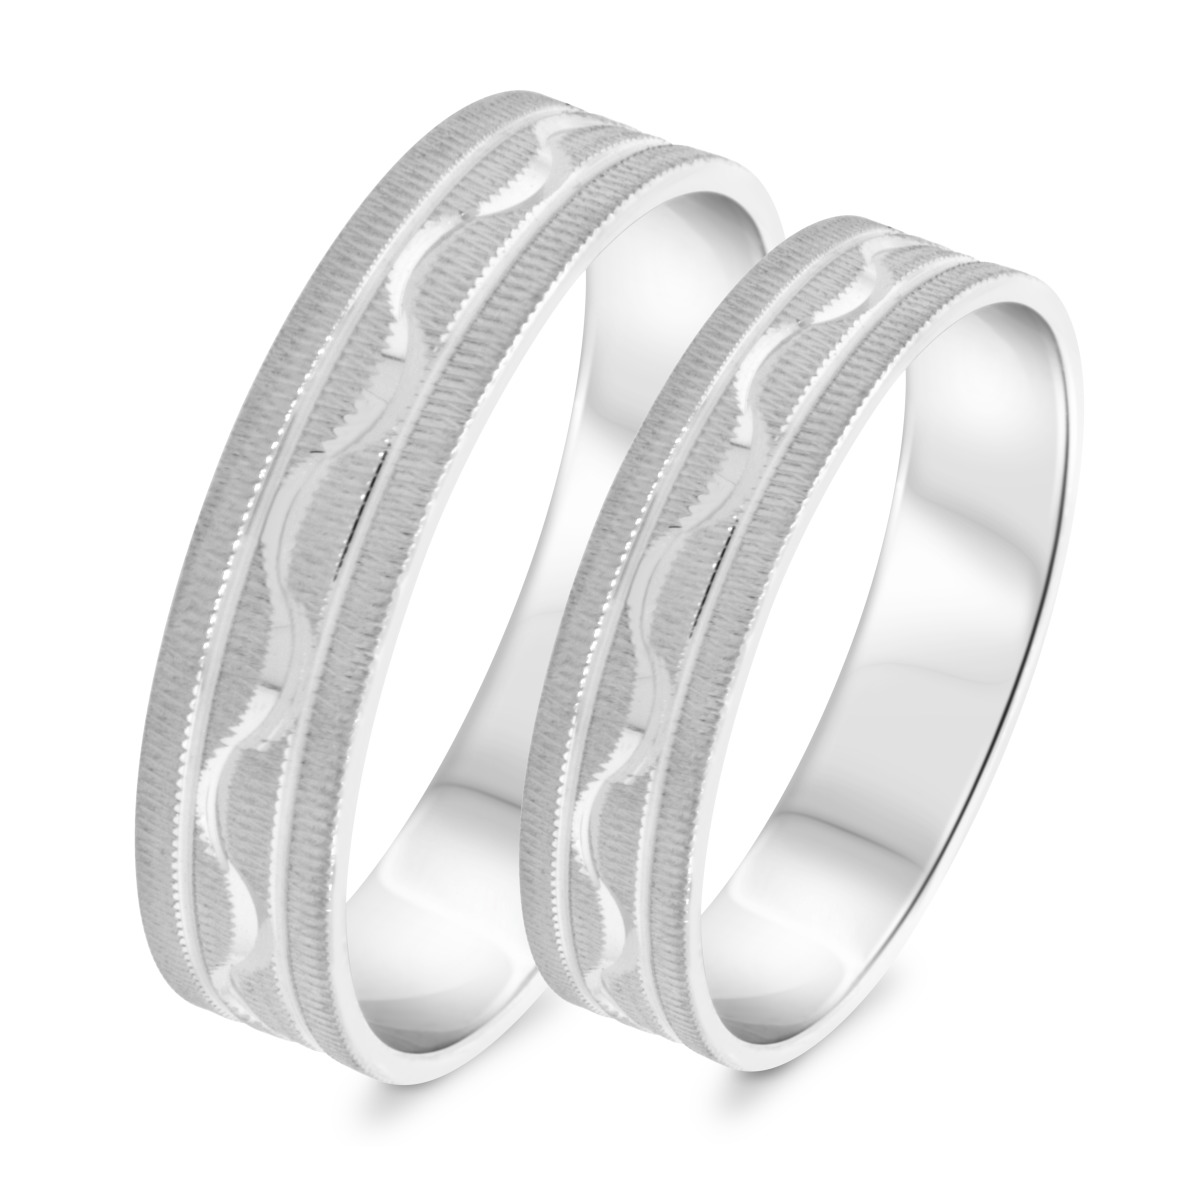 Matching Wedding Band Set 14K White Gold